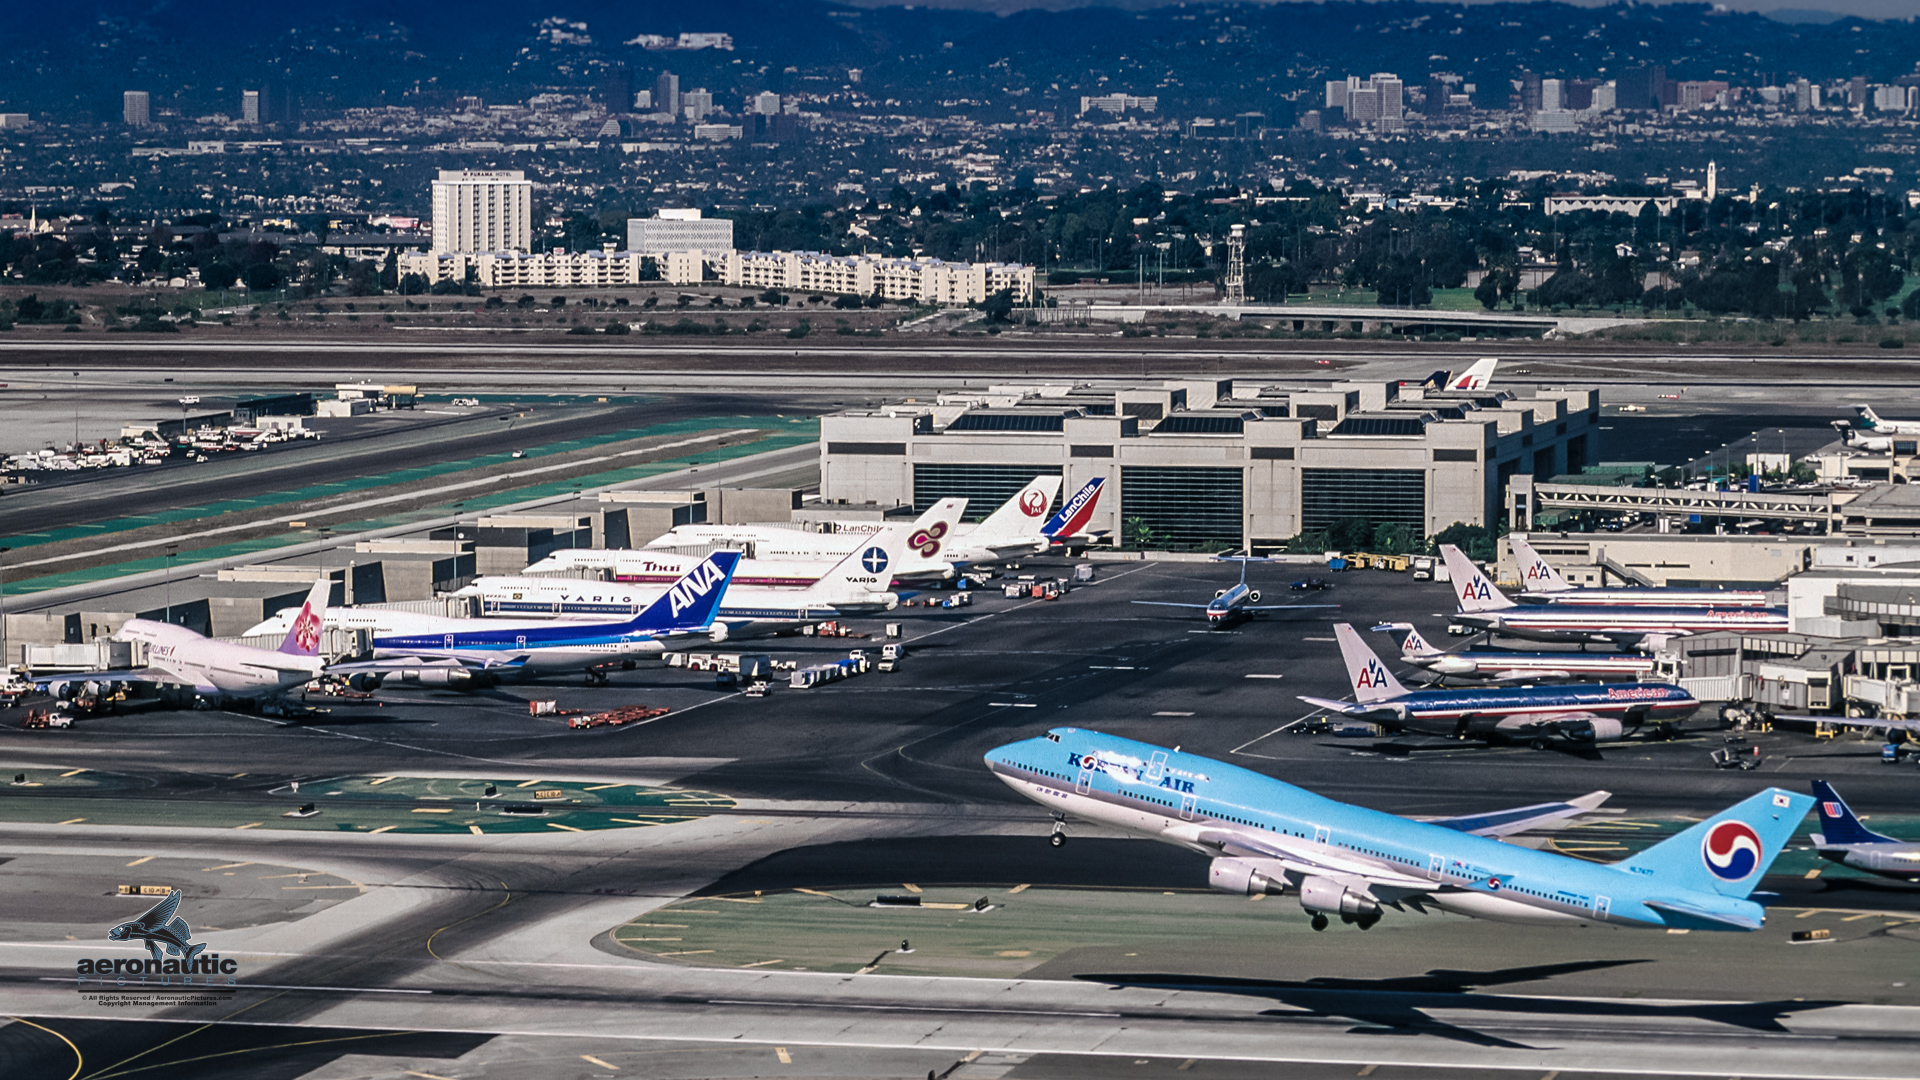 LAX Los Angeles International Airport Aerial View